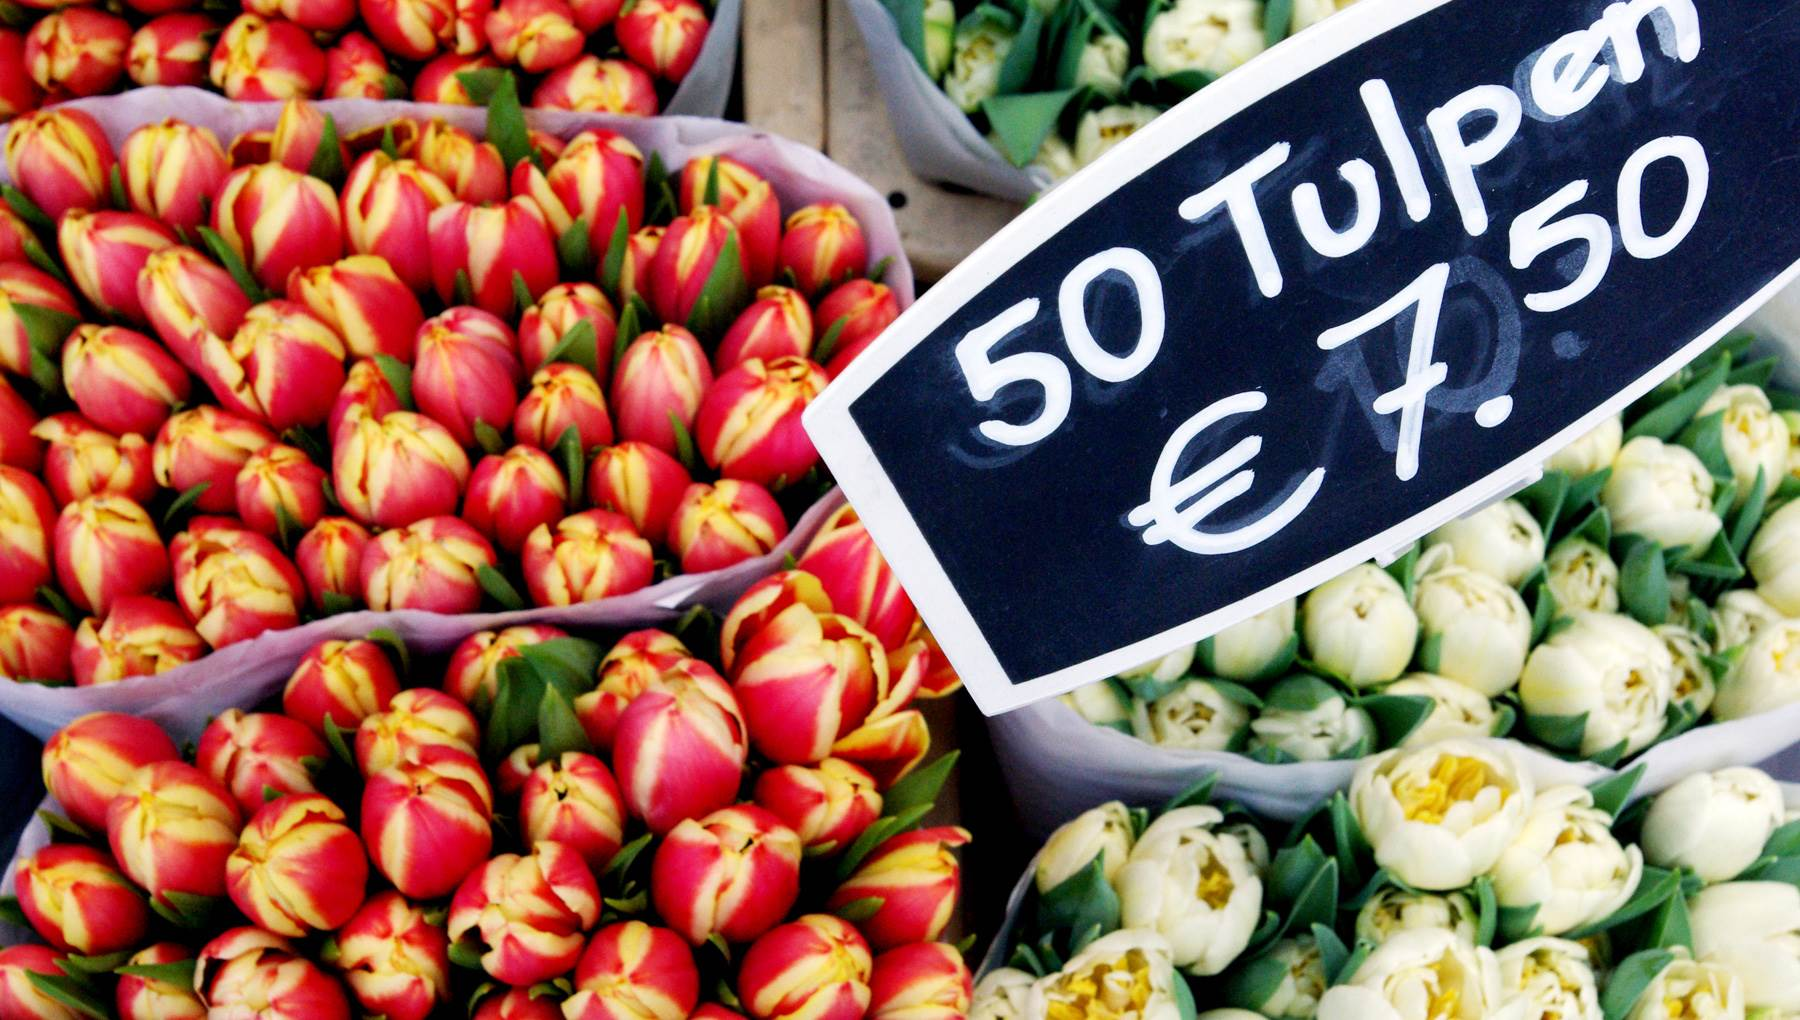 Amsterdam tulips shop market, CC BY 2.0 Lali Masriera via Flickr